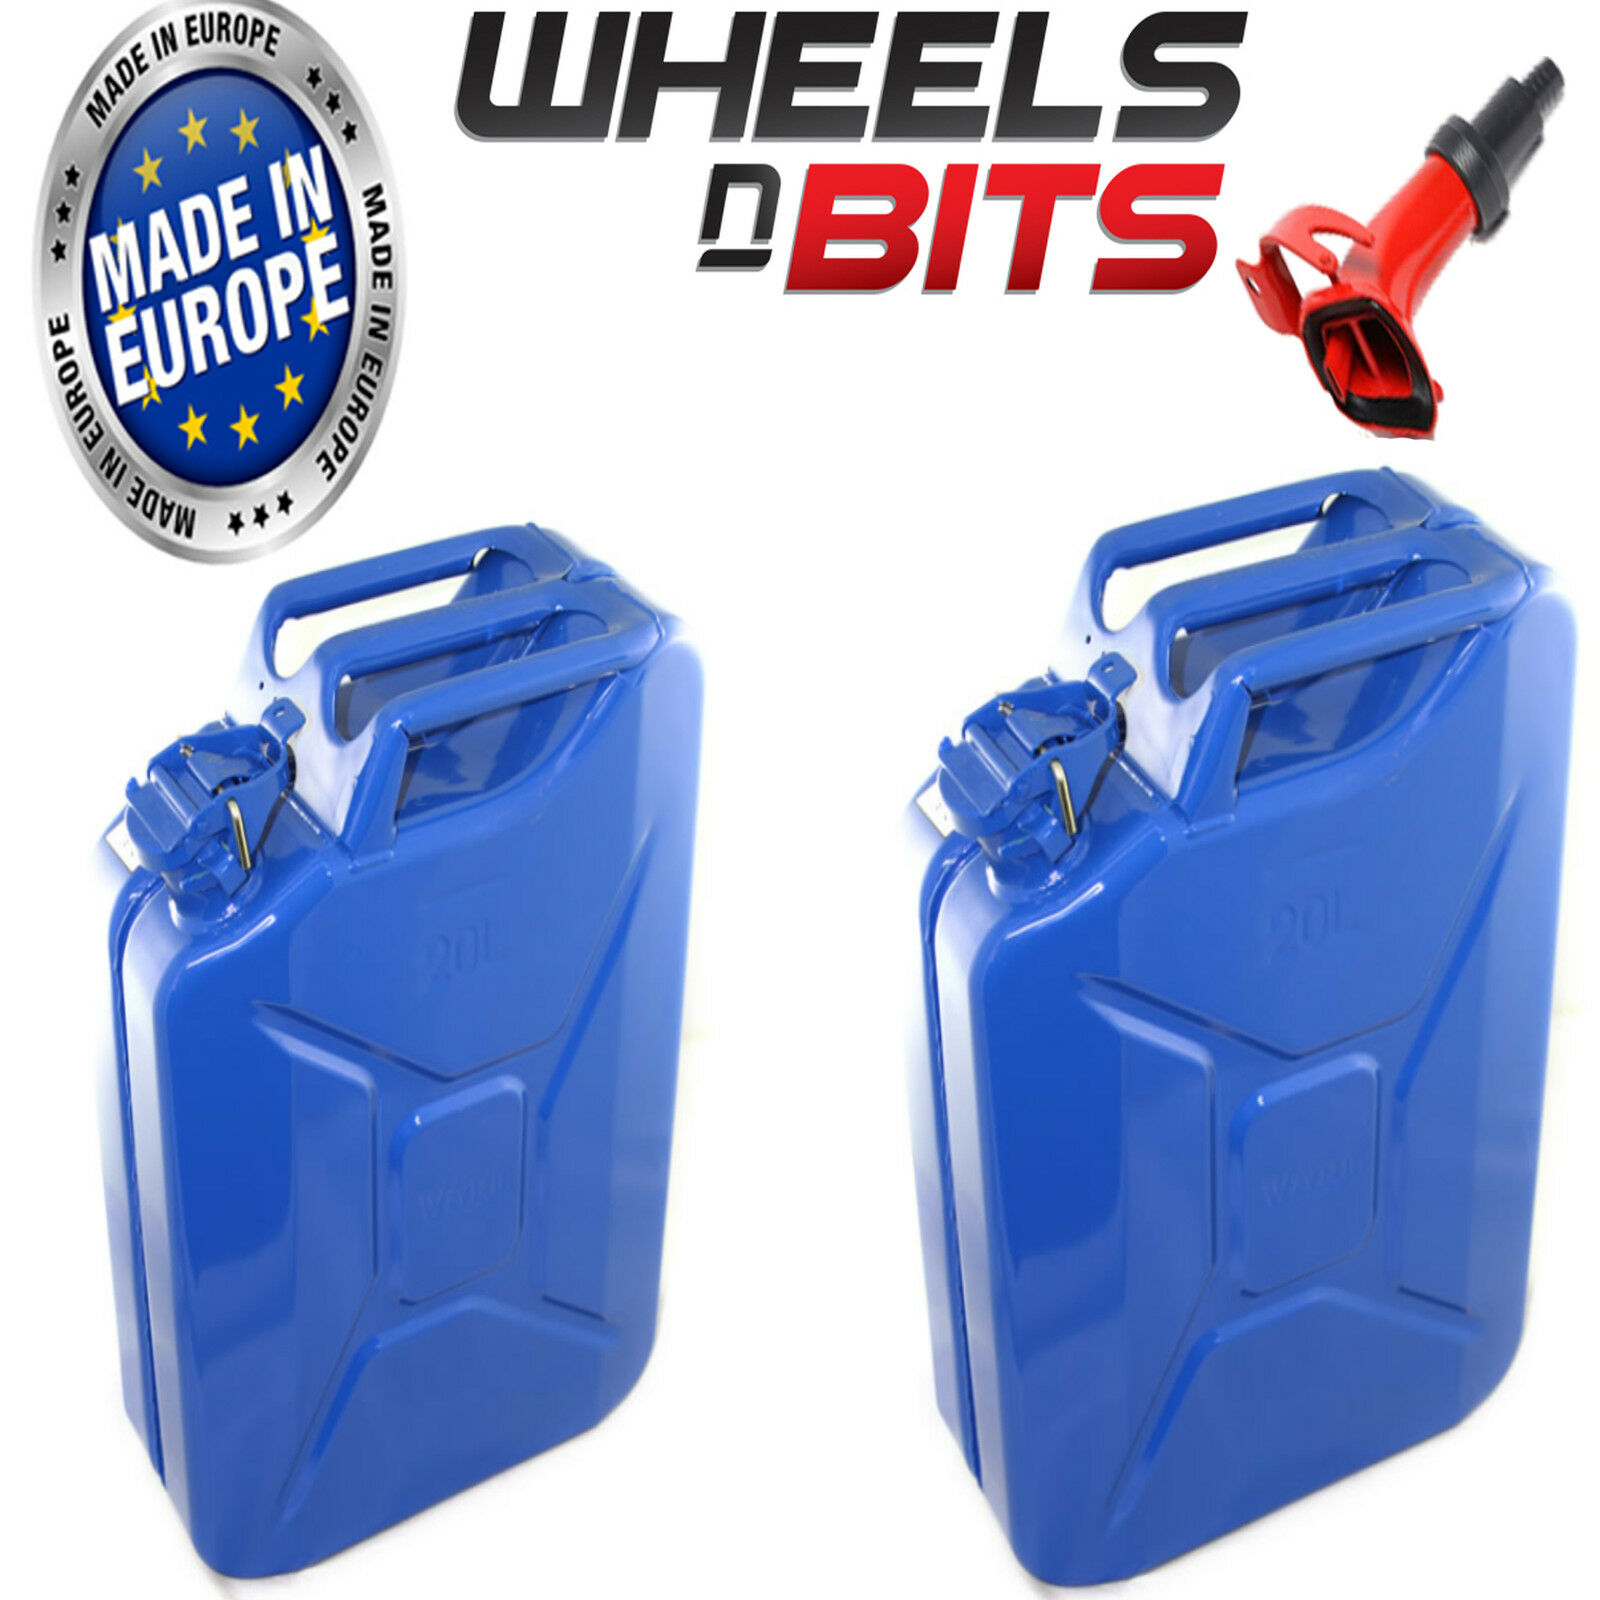 2 x  20l blue Jerry Militare Lattine Combustibile Olio Benzina Diesel Deposito  online at best price